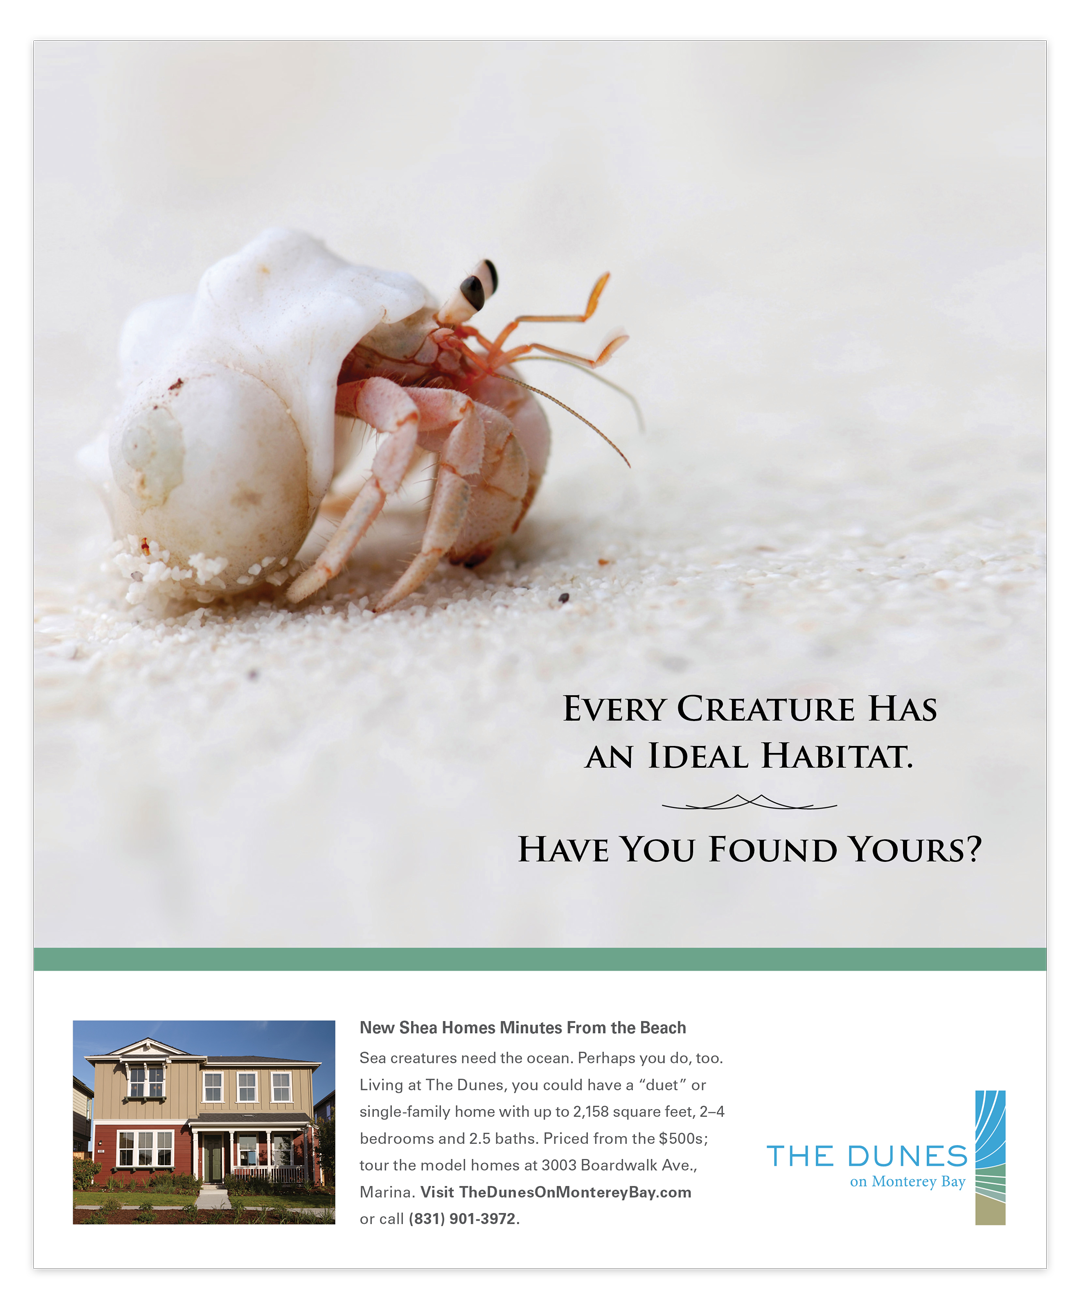 Print advertisement for homes at The Dunes